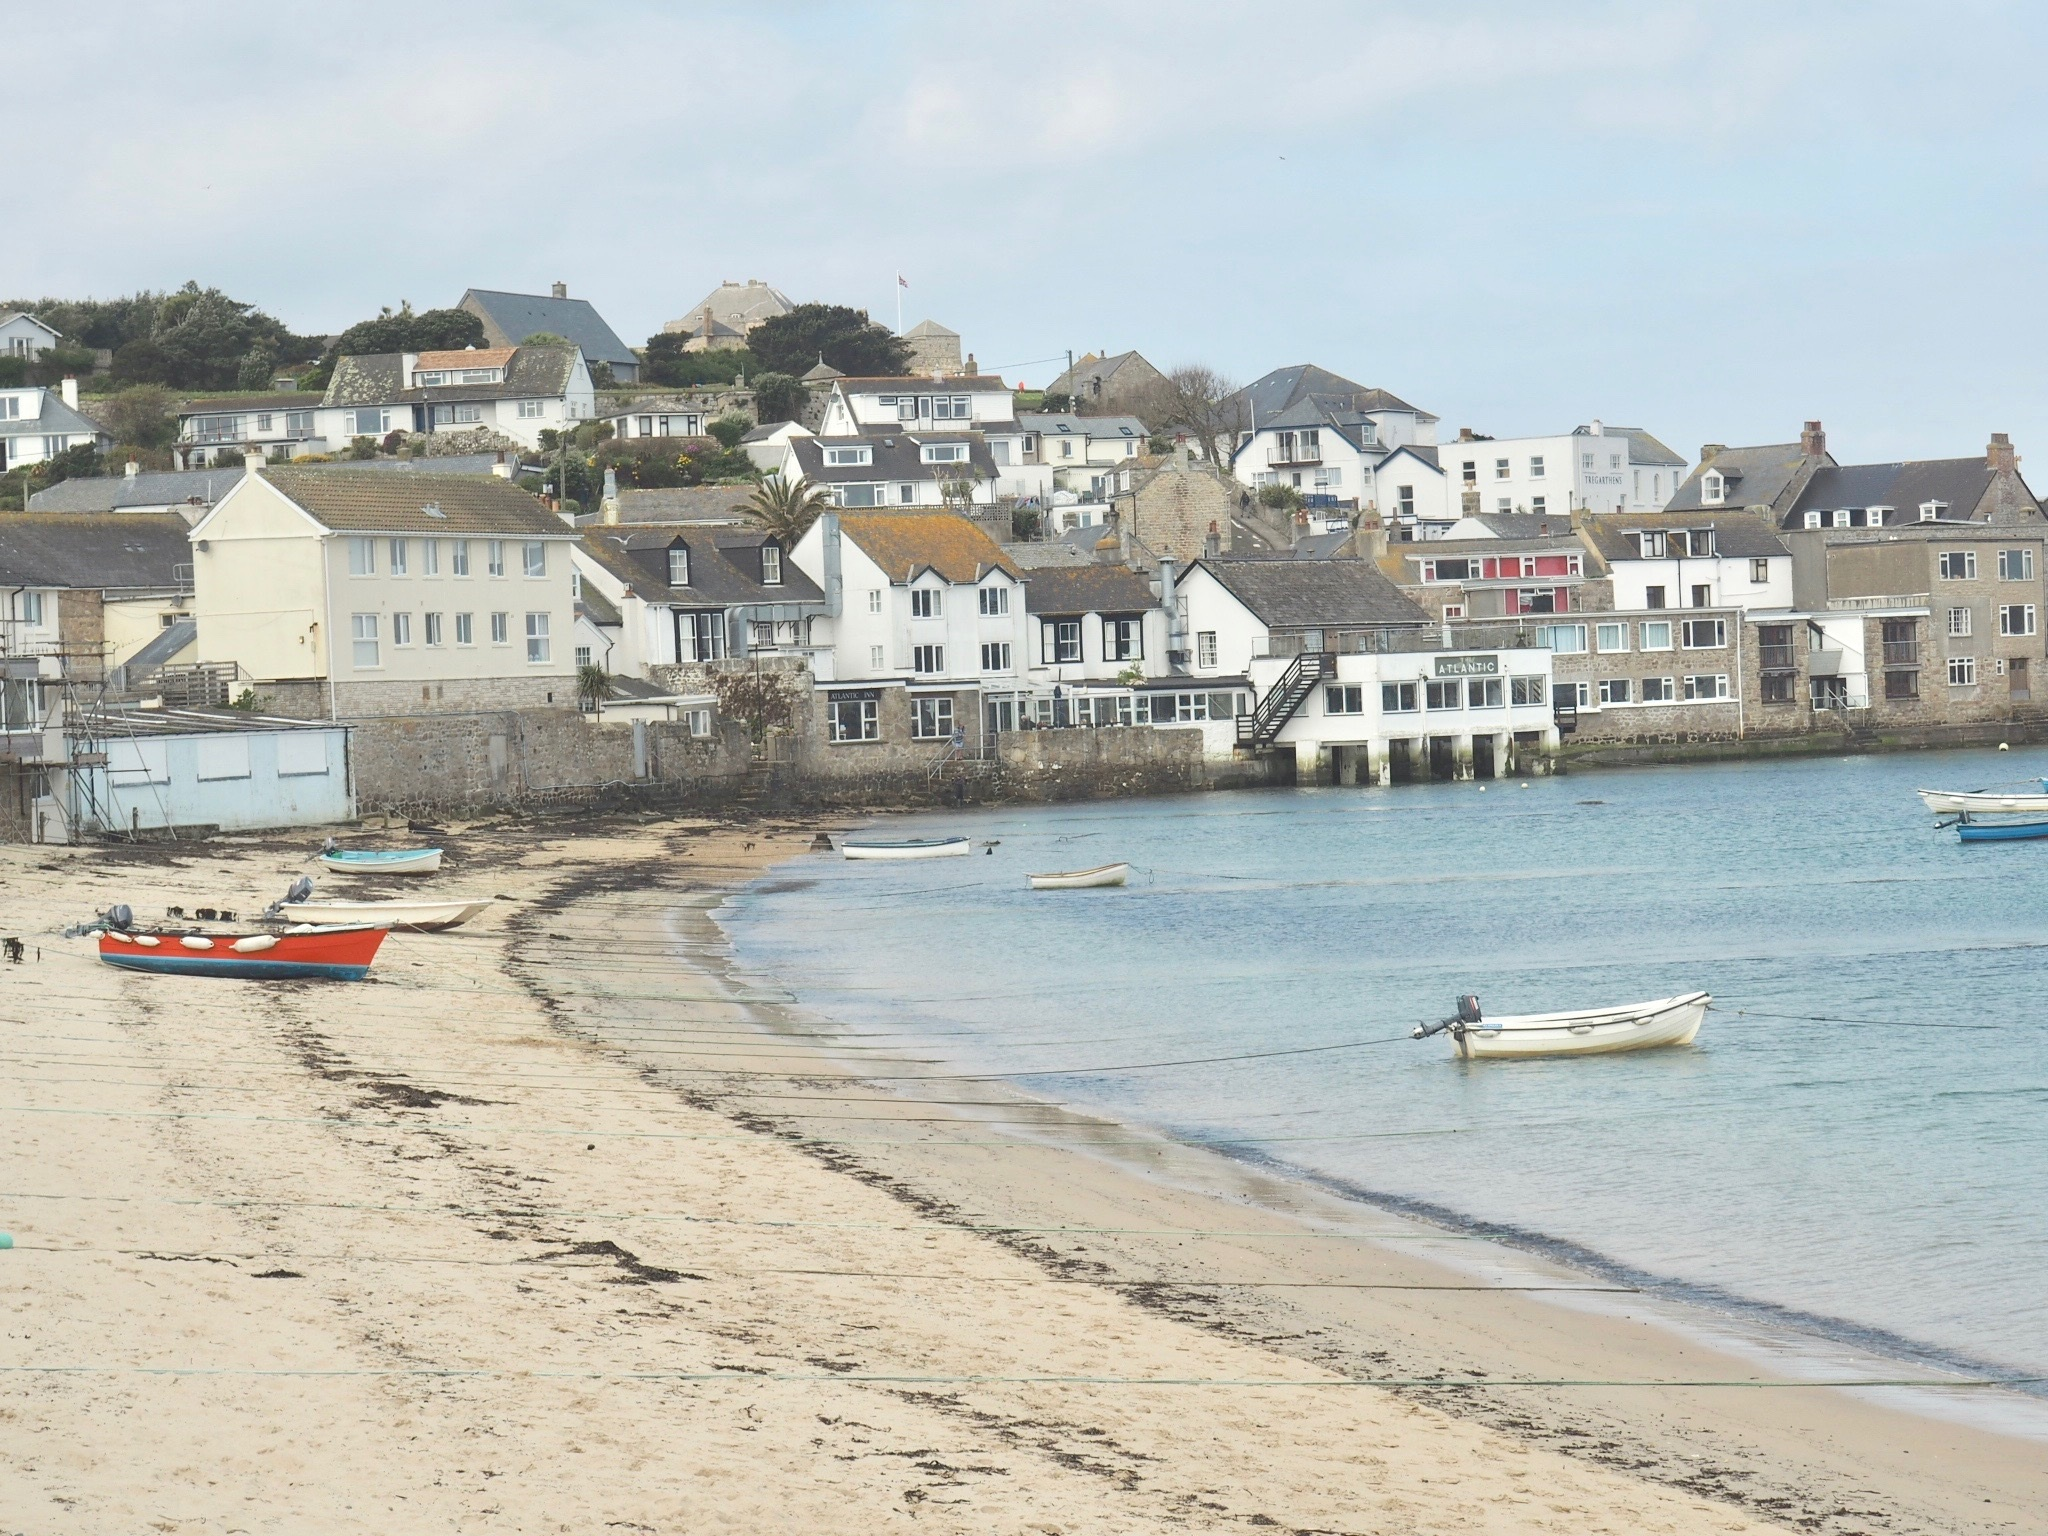 View of Hugh Town, St. Mary's, Scilly Isles.jpg